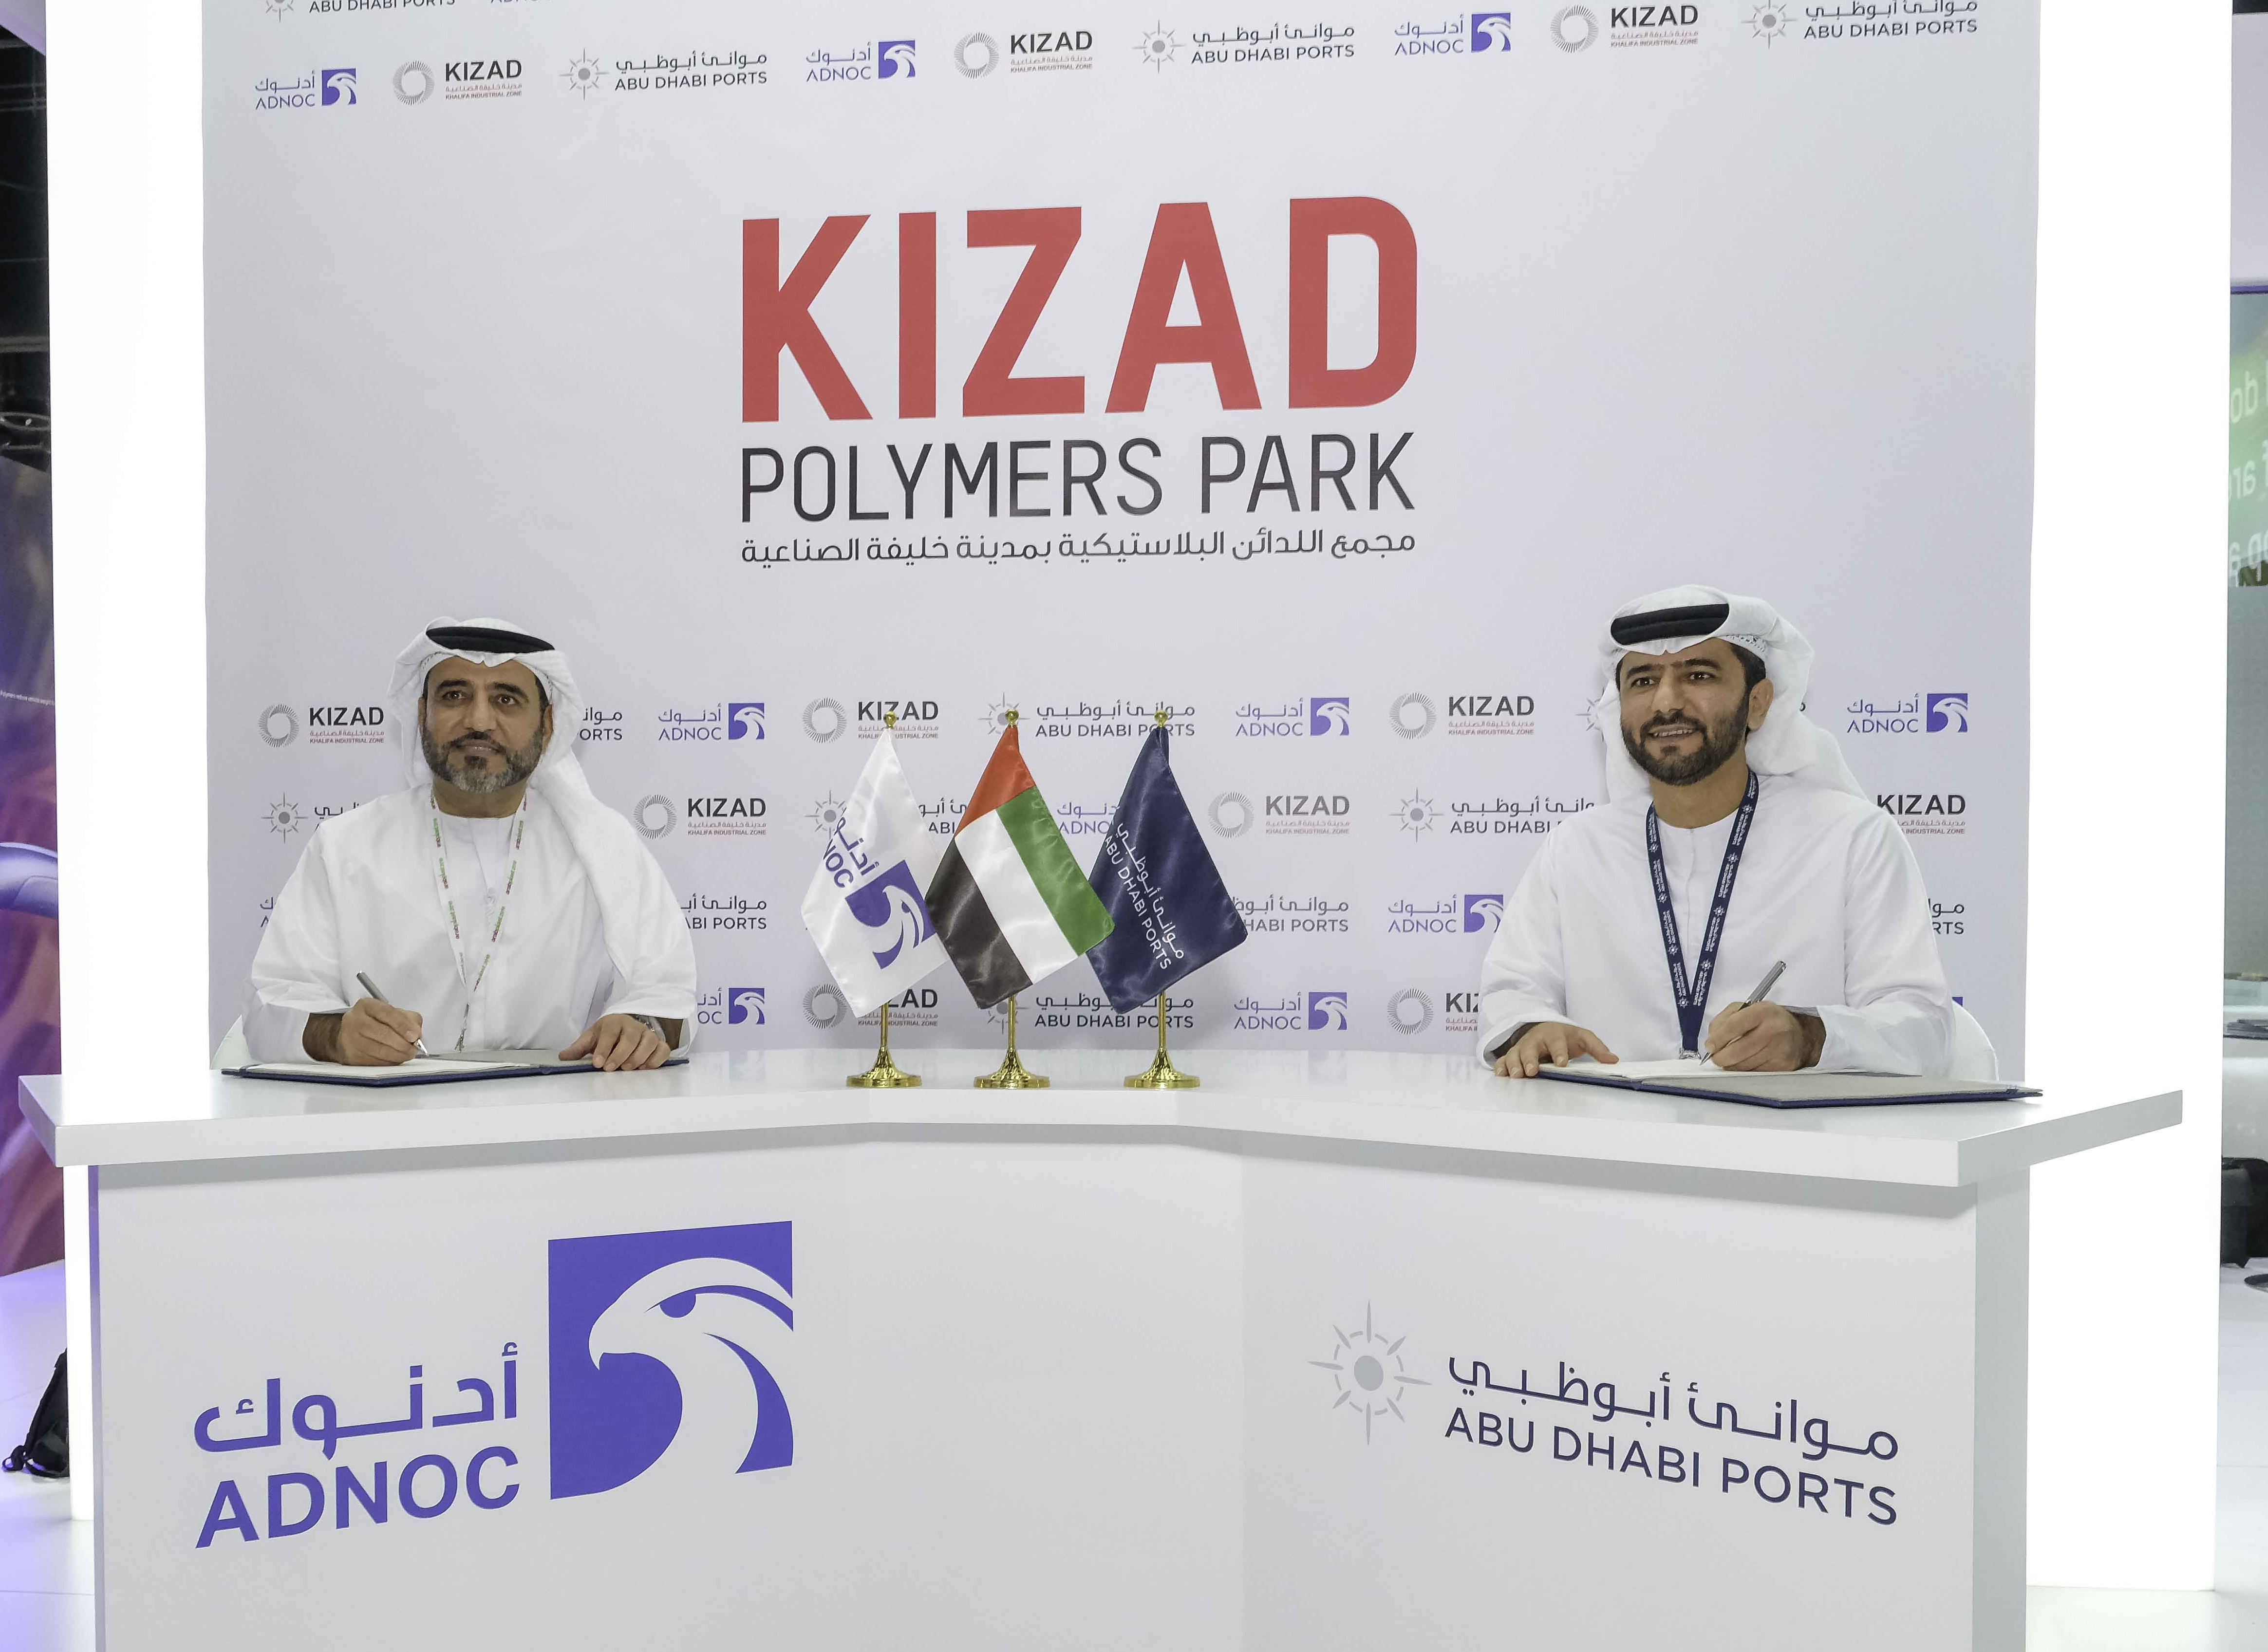 Captain Mohammed Juma-Shamsi, Chief Executive Officer of Abu Dhabi Ports, and Mr. Abdul Aziz Al-Hajri, Director of Gas, Refining and Petrochemicals at the grand opening of the KIZAD Polymers Plant. Photo via KIZAD